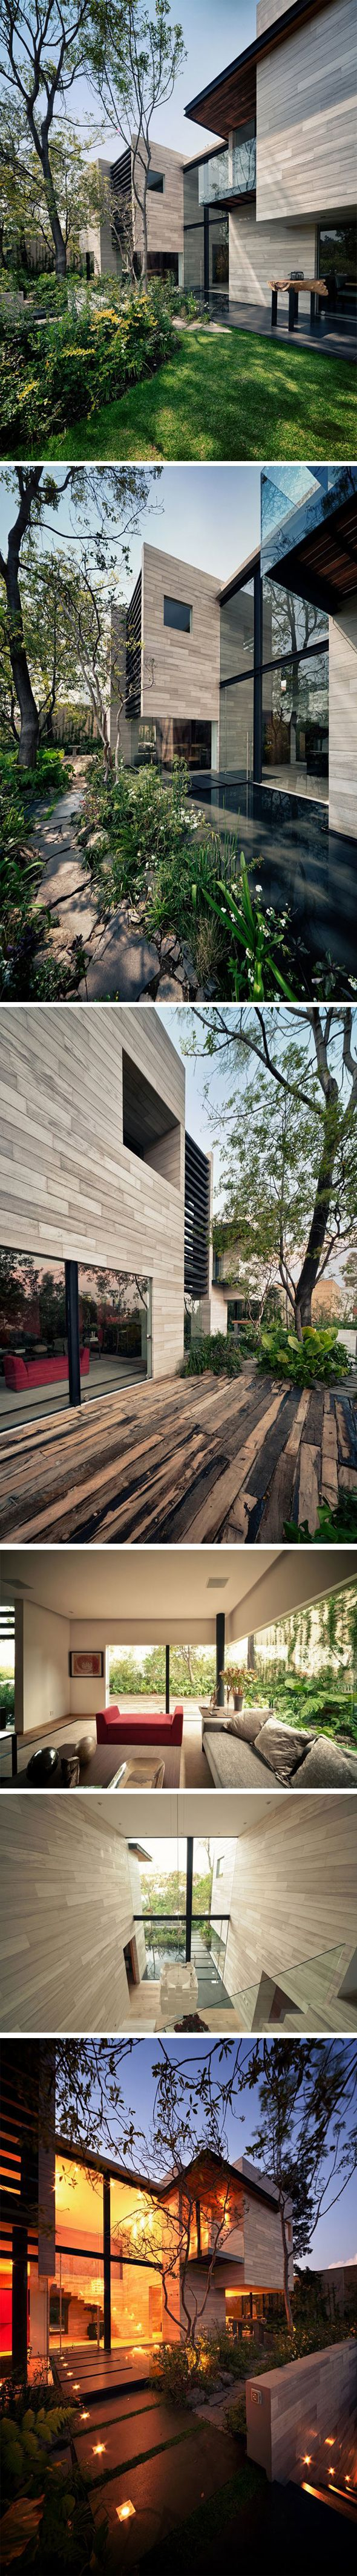 123 best architecture images on pinterest